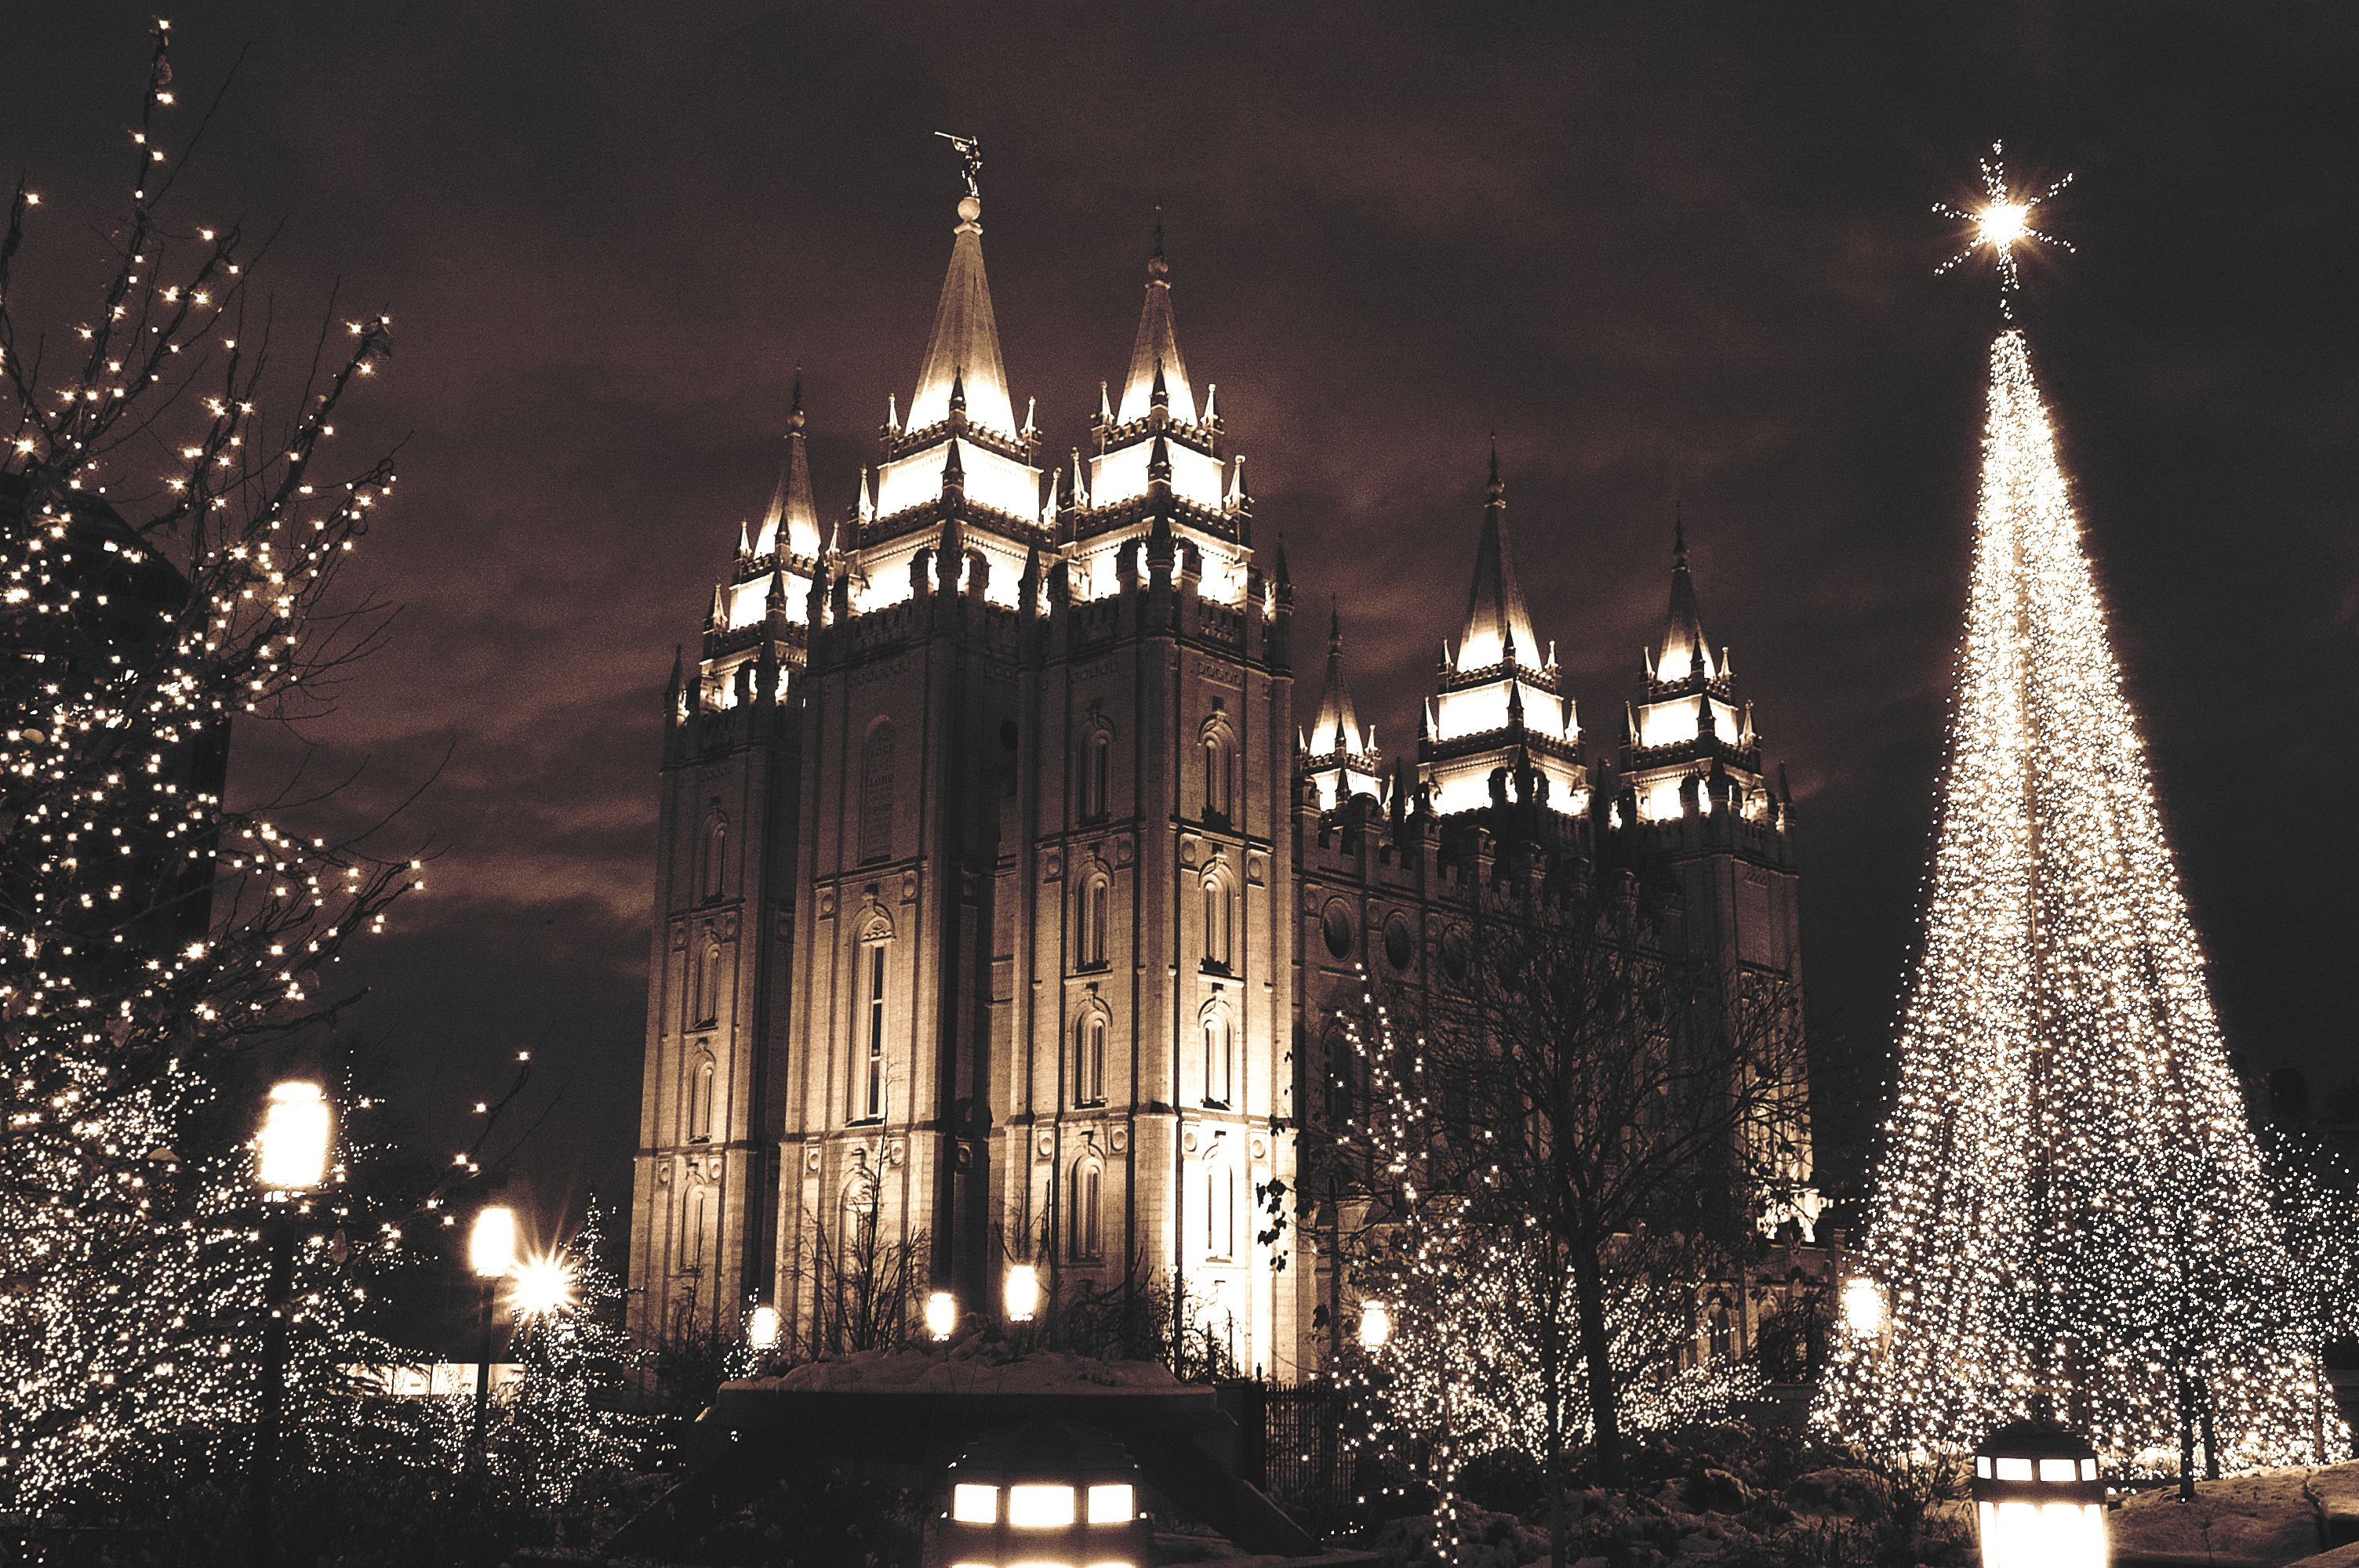 Temple Square and downtown Salt Lake City covered in holiday lights at night